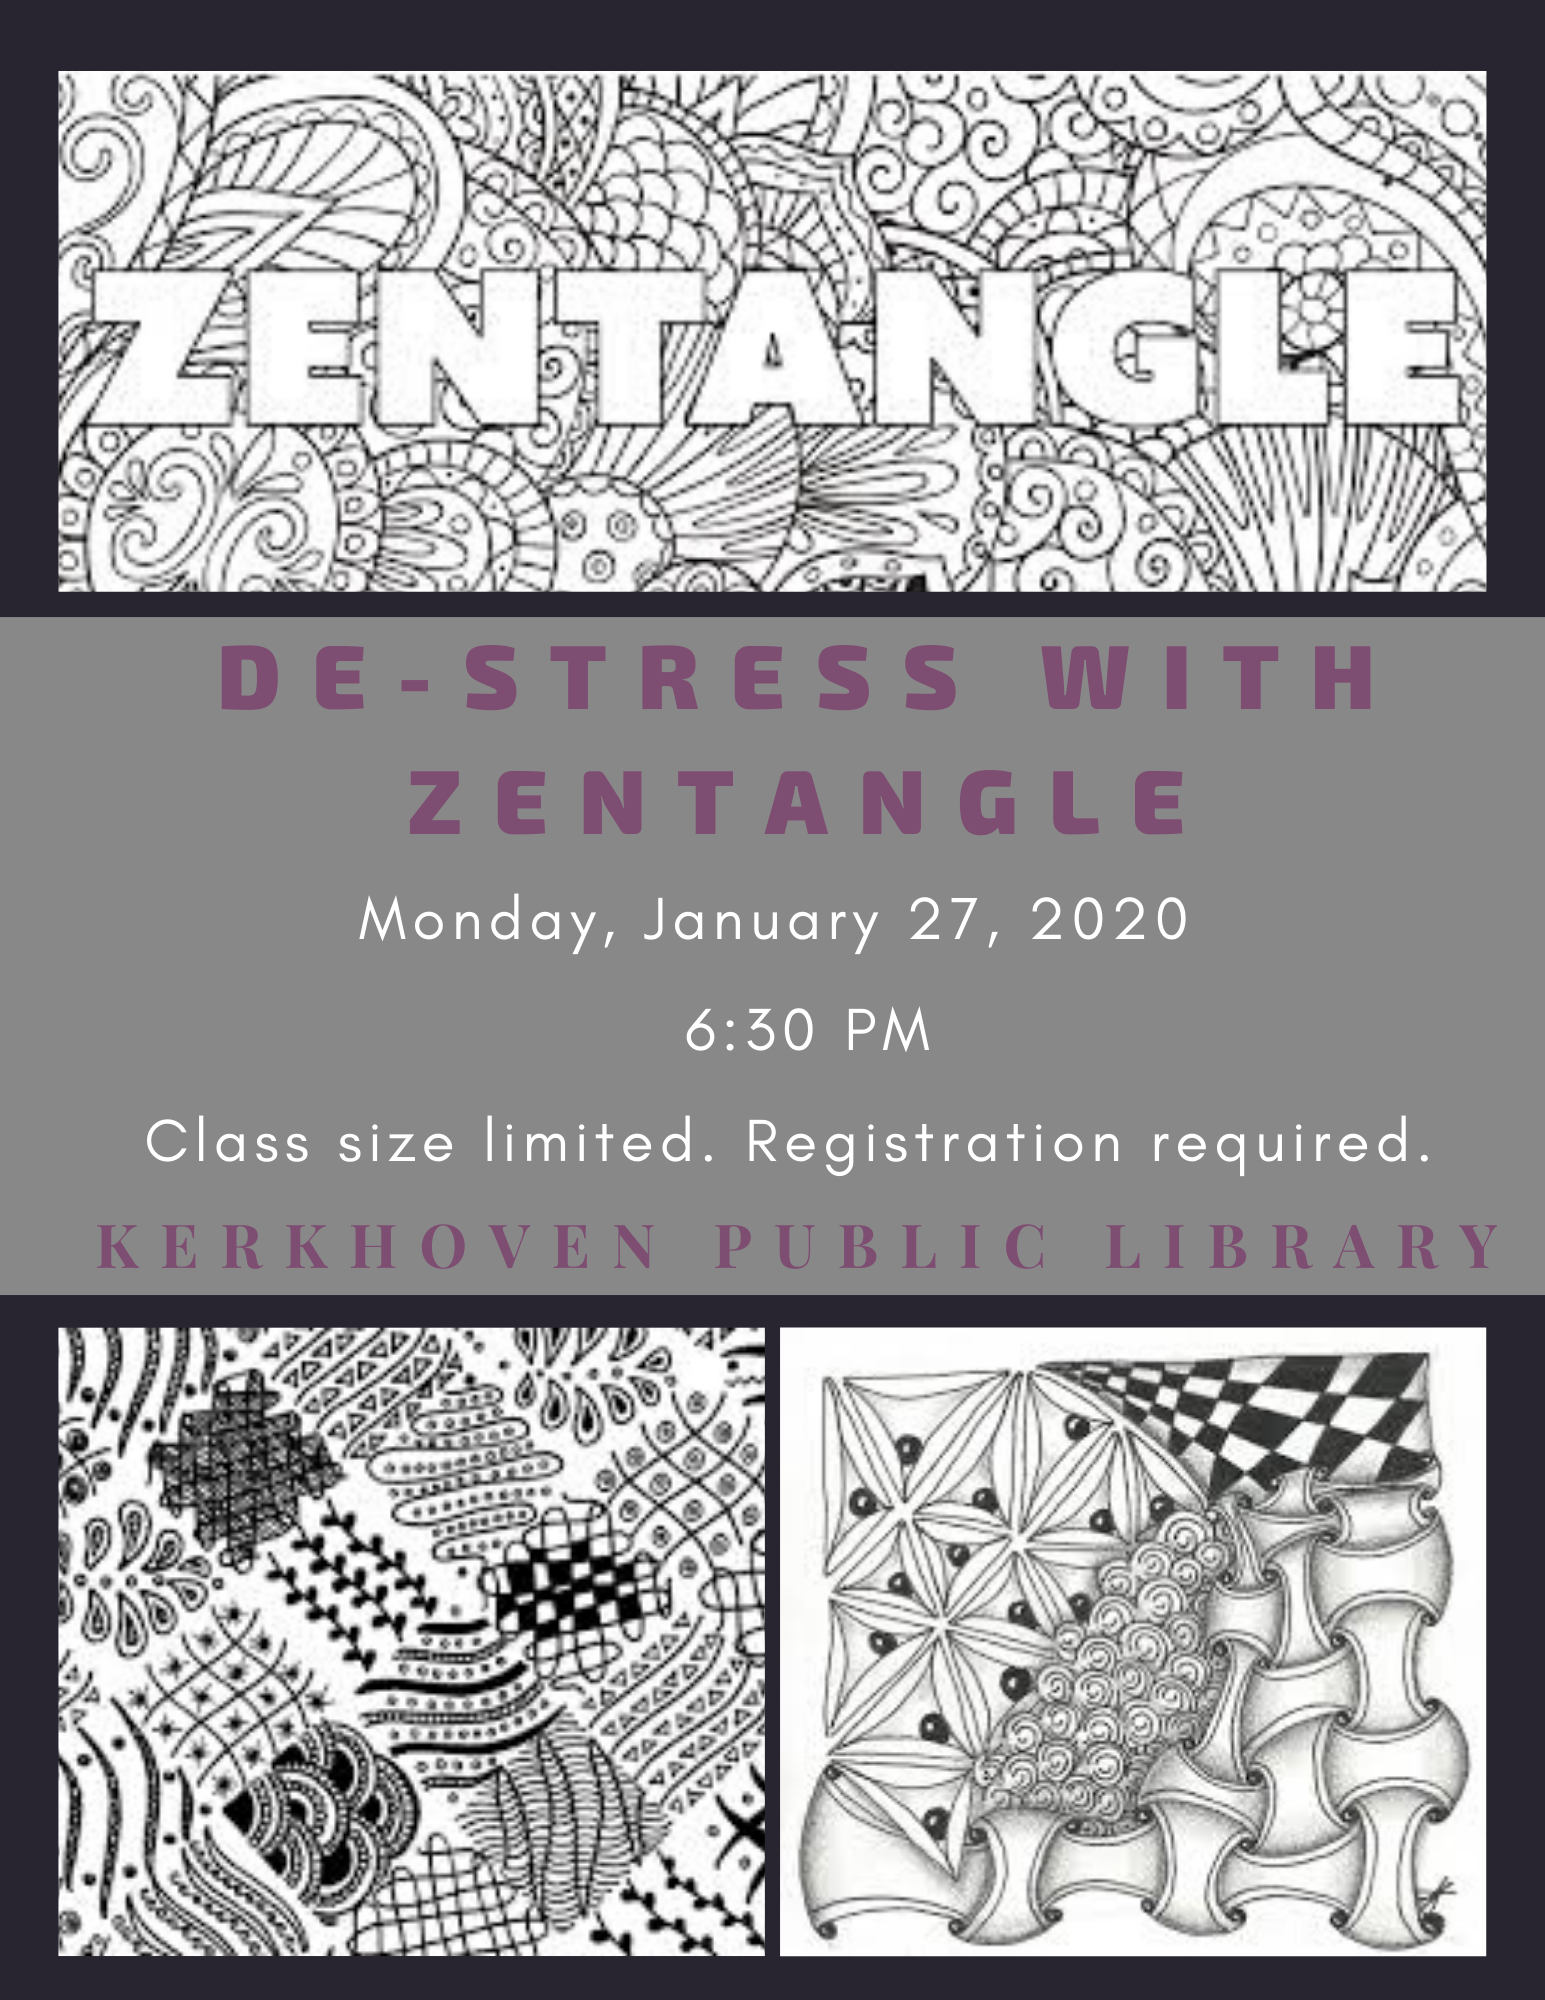 De-Stress with Zentangle on Monday, January 27 at 6:30 pm. Class size is limited and registration is required.